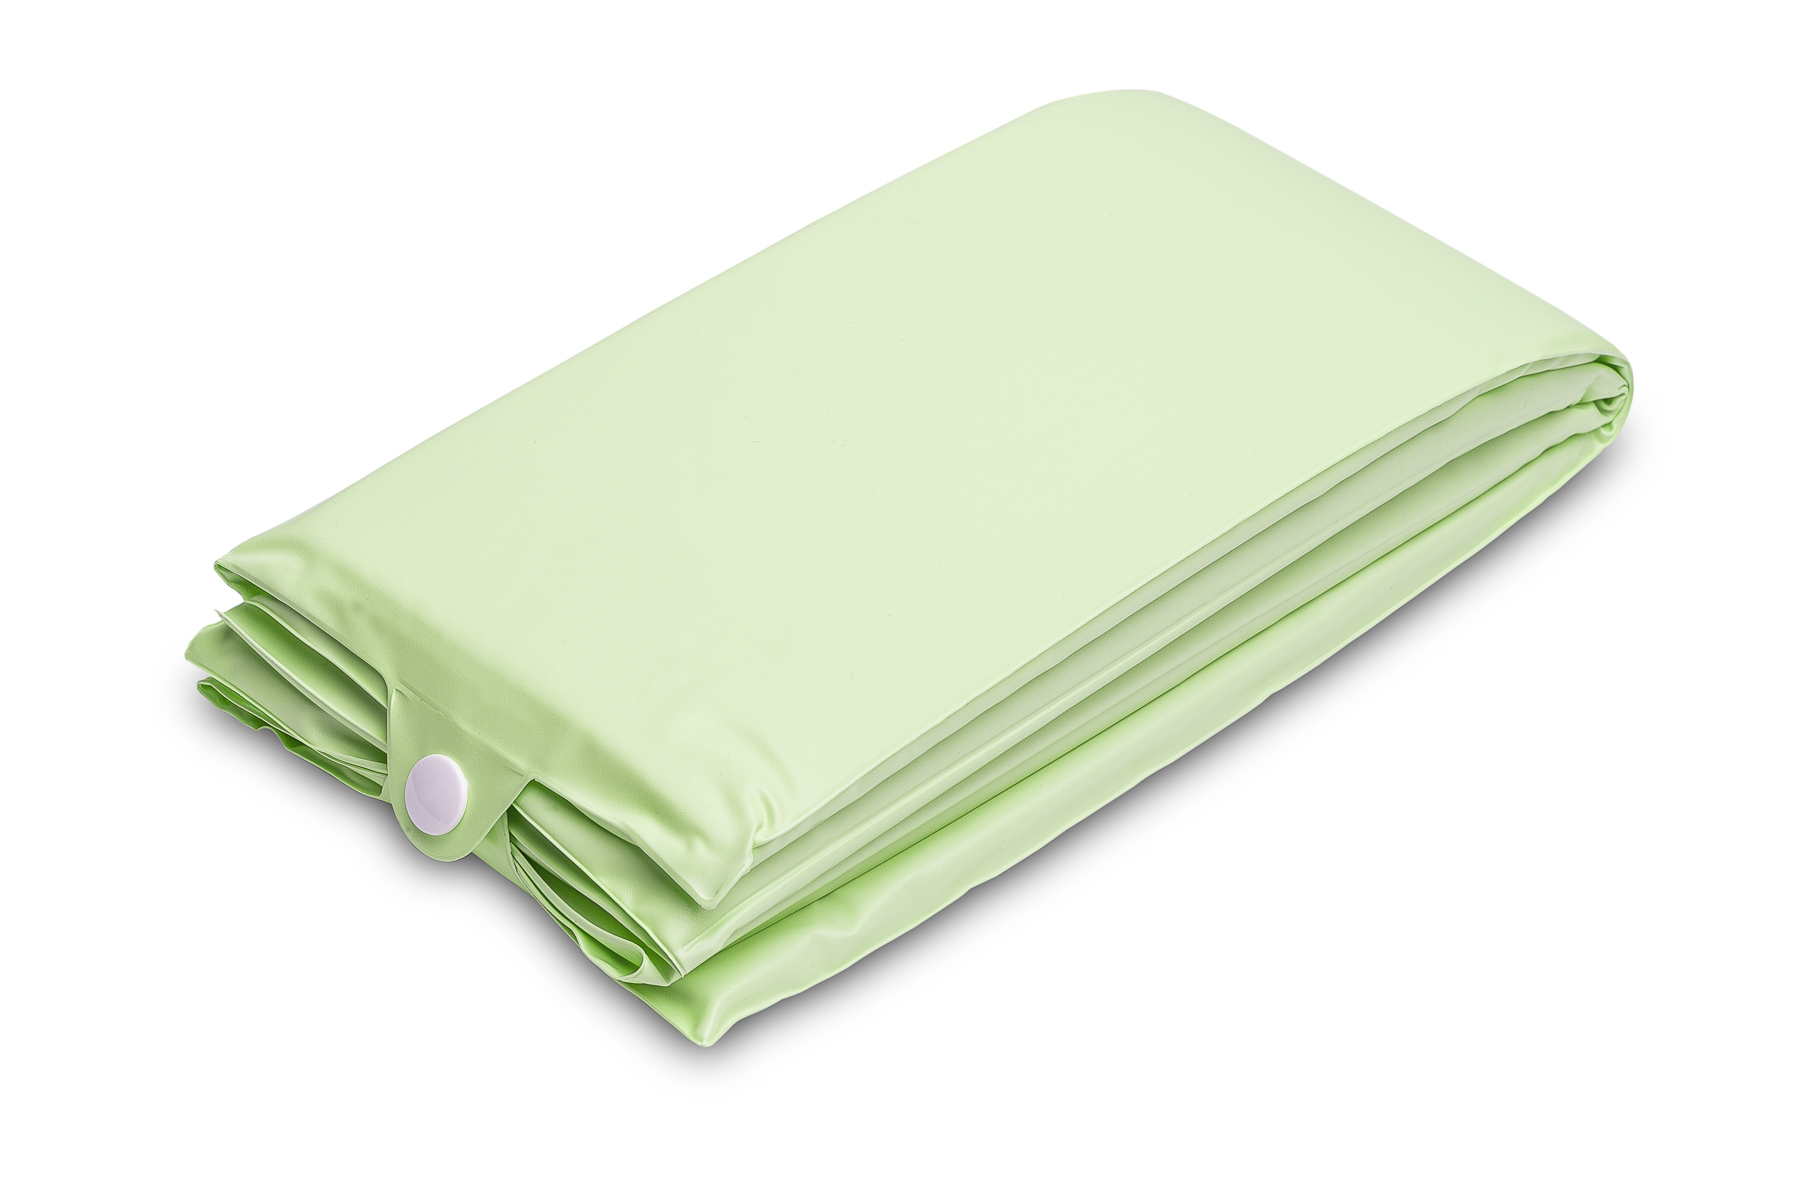 Tourist mat/changing mat – green